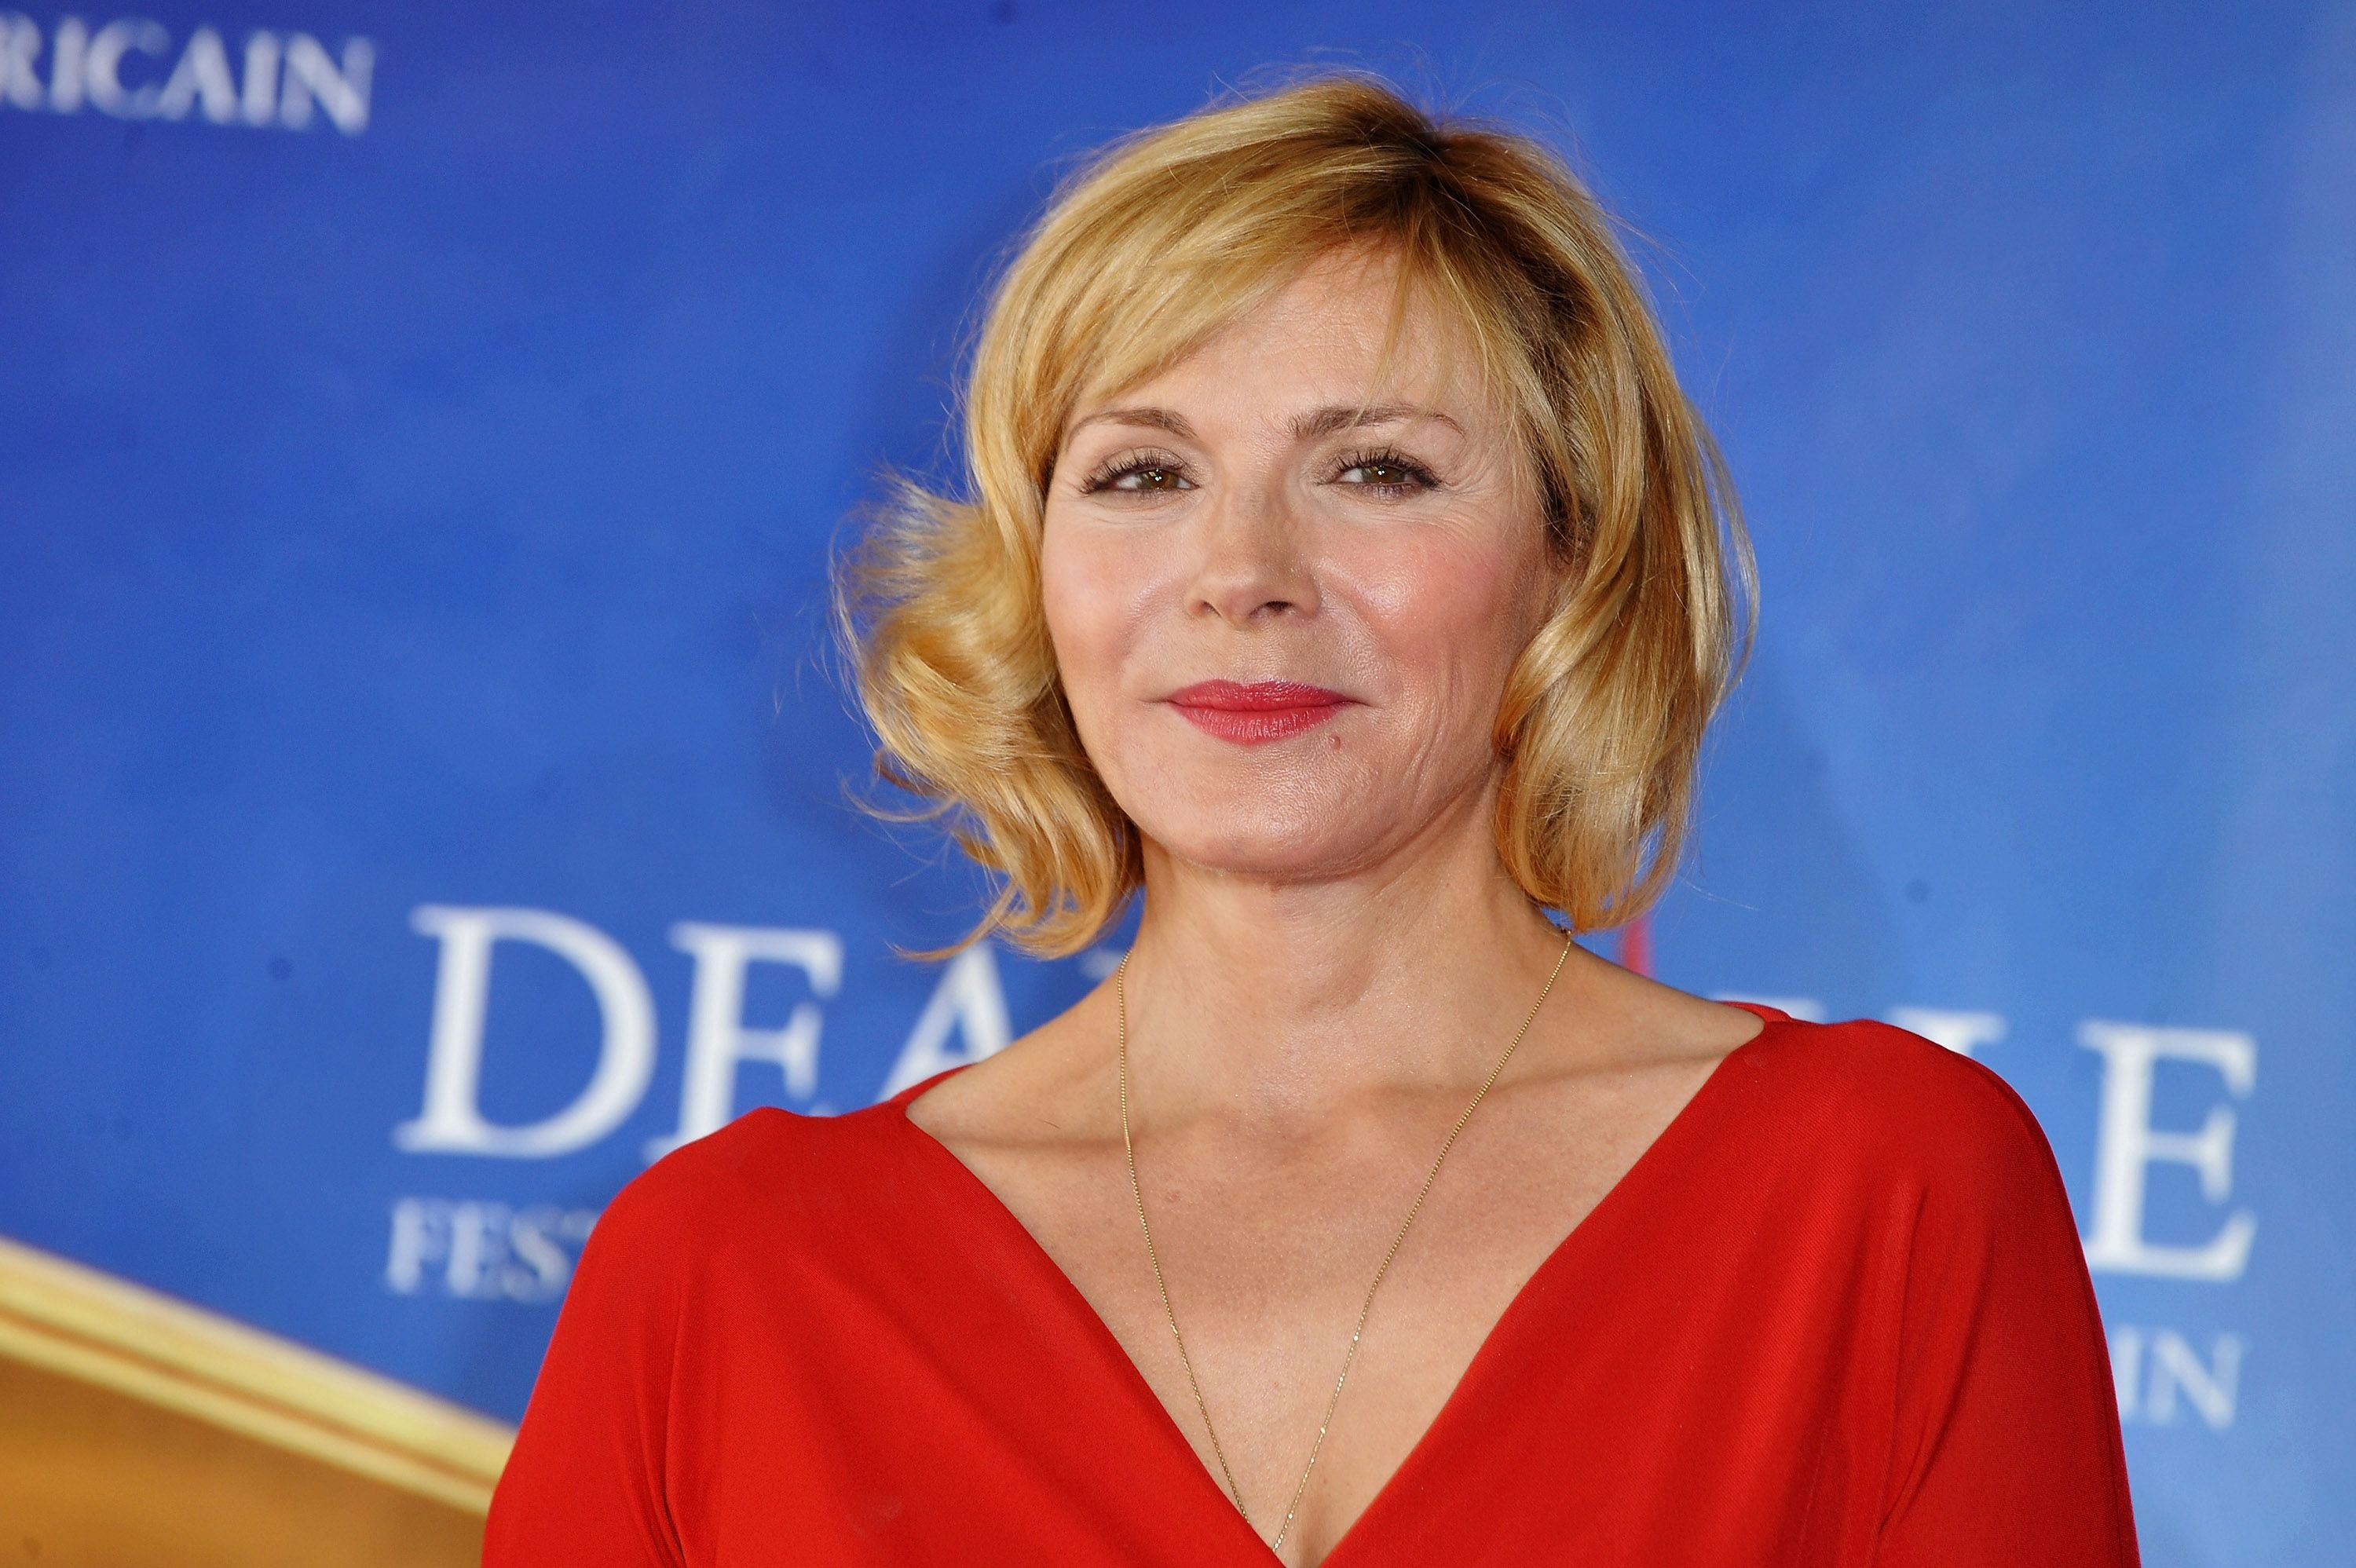 Kim Cattrall at the 36th Deauville American Film Festival on 10th September, 2010  | Photo: Getty Images